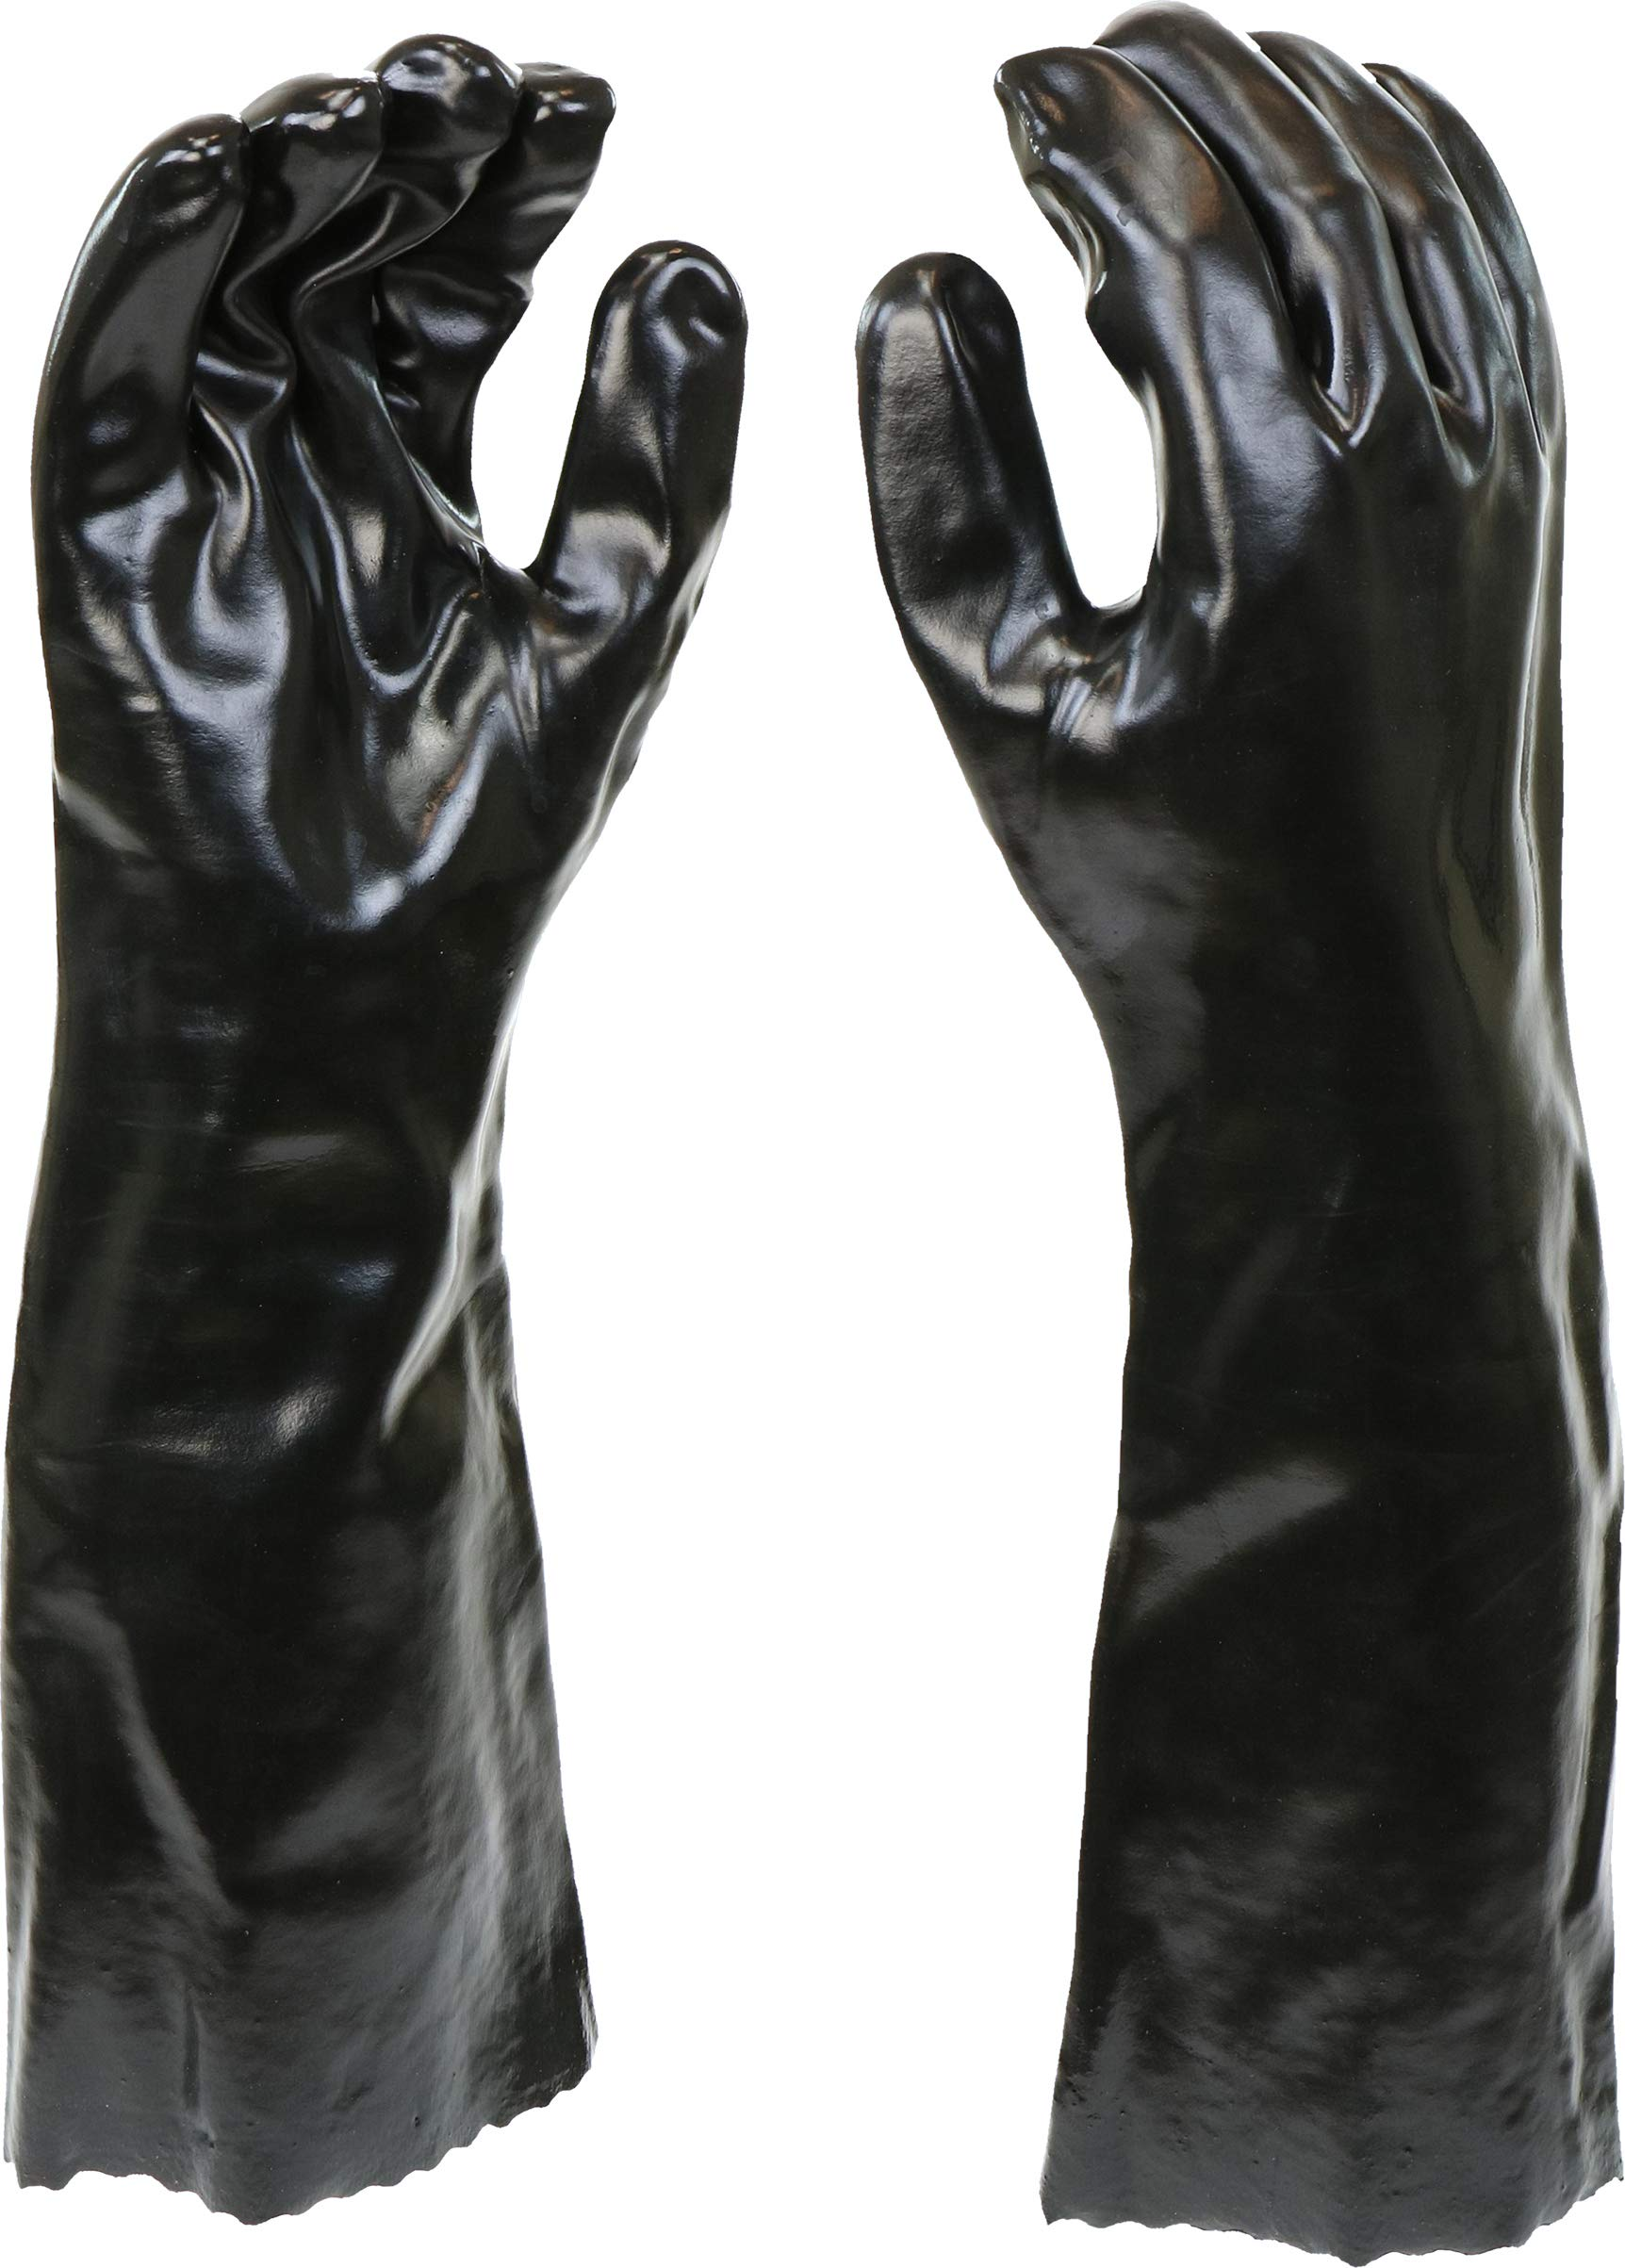 West Chester 12018 Chemical Resistant PVC Coated Work Gloves: 18'' Length, One Size Fits Most, 3 Pairs